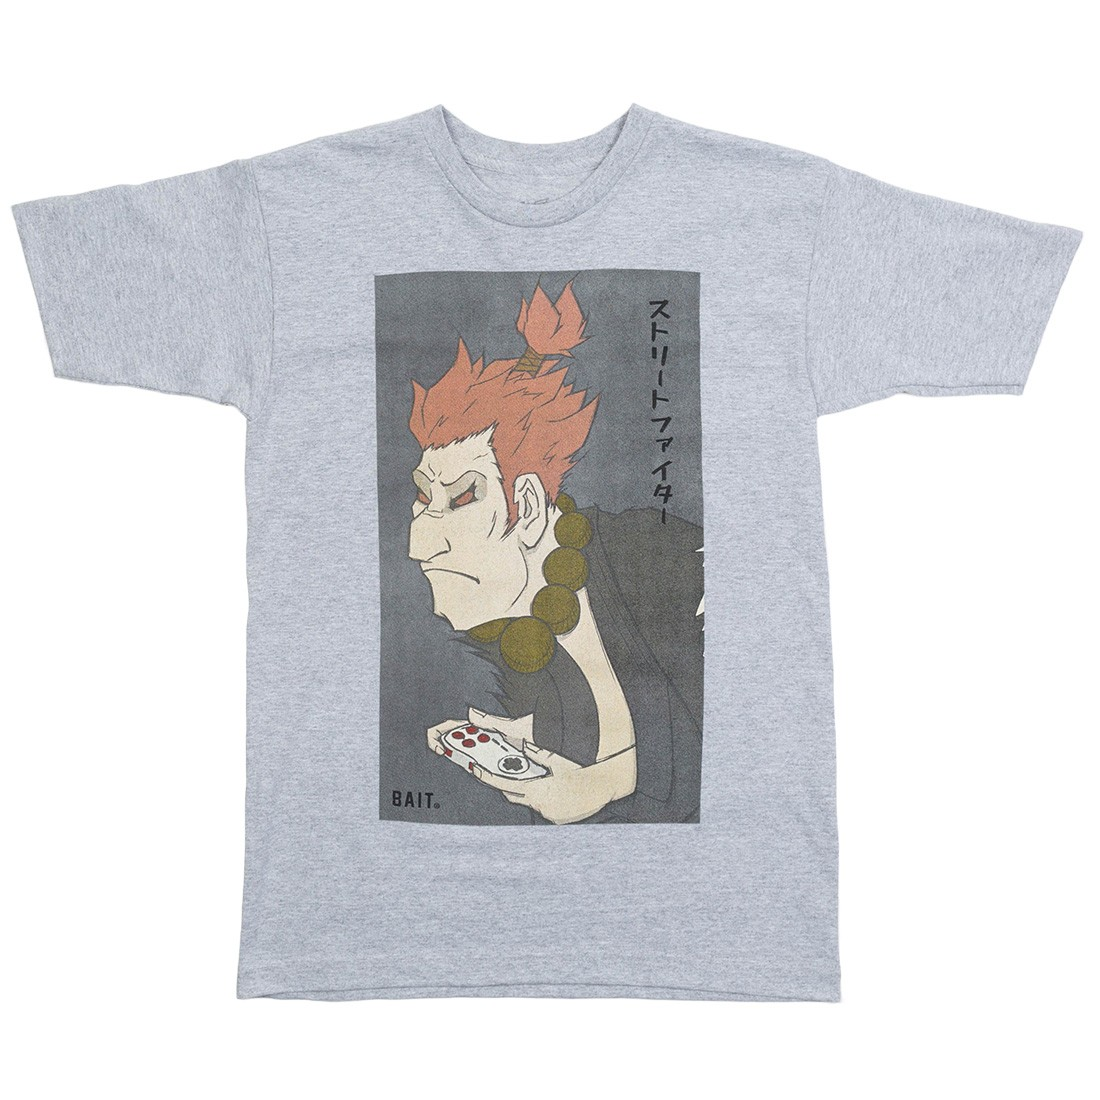 BAIT x Street Fighter x Kidokyo Men Akuma Tee (gray / dark ash)